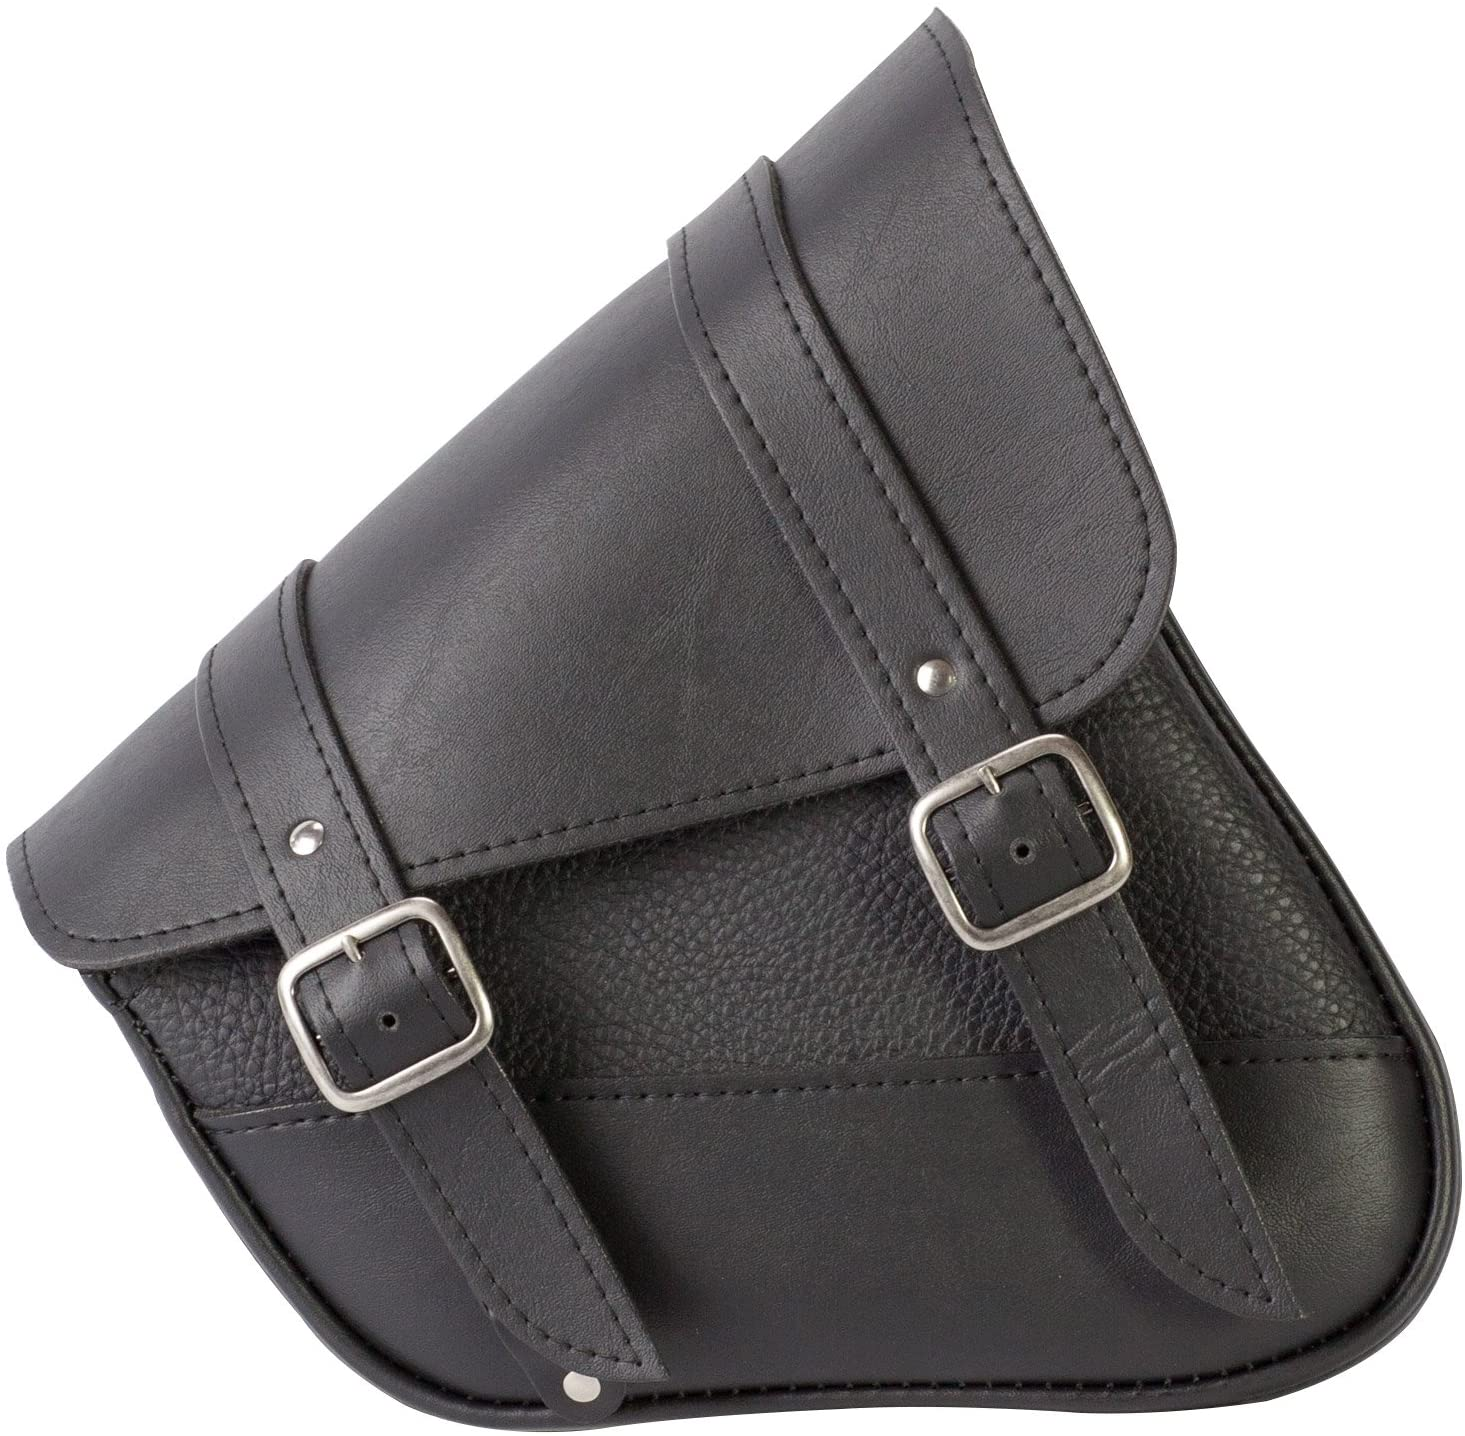 9 Liter Capacity Black Dowco Willie /& Max 59776-00 Triangulated Synthetic Leather Motorcycle Swingarm Bag